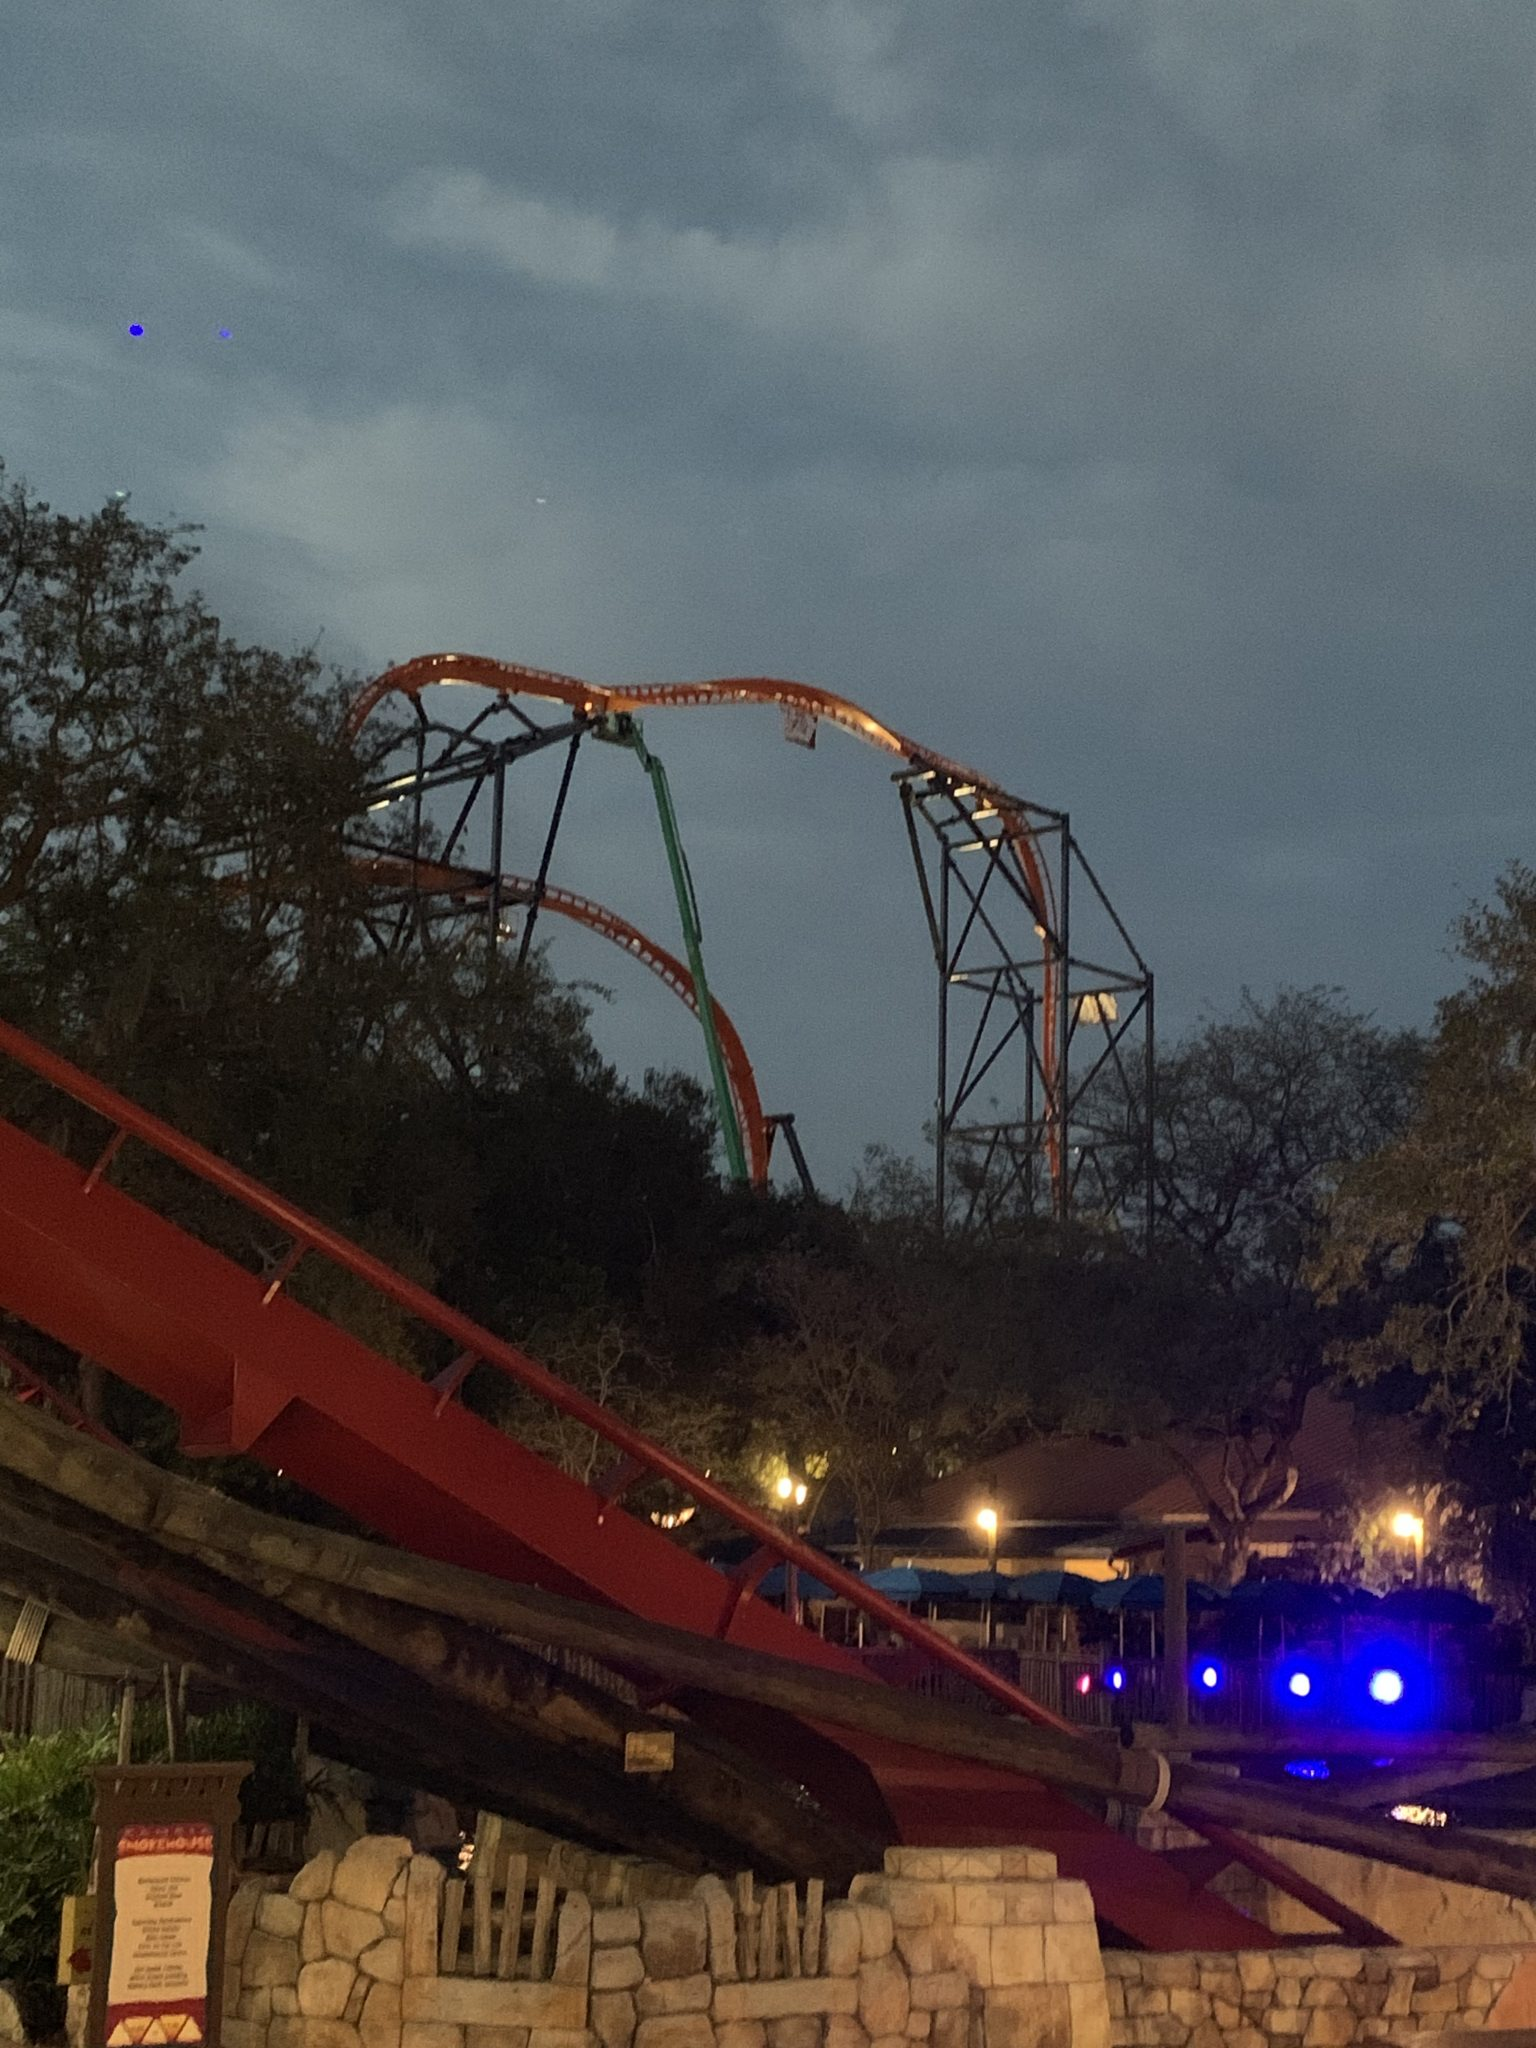 New Tigris roller coaster at Busch Gardens Tampa Bay